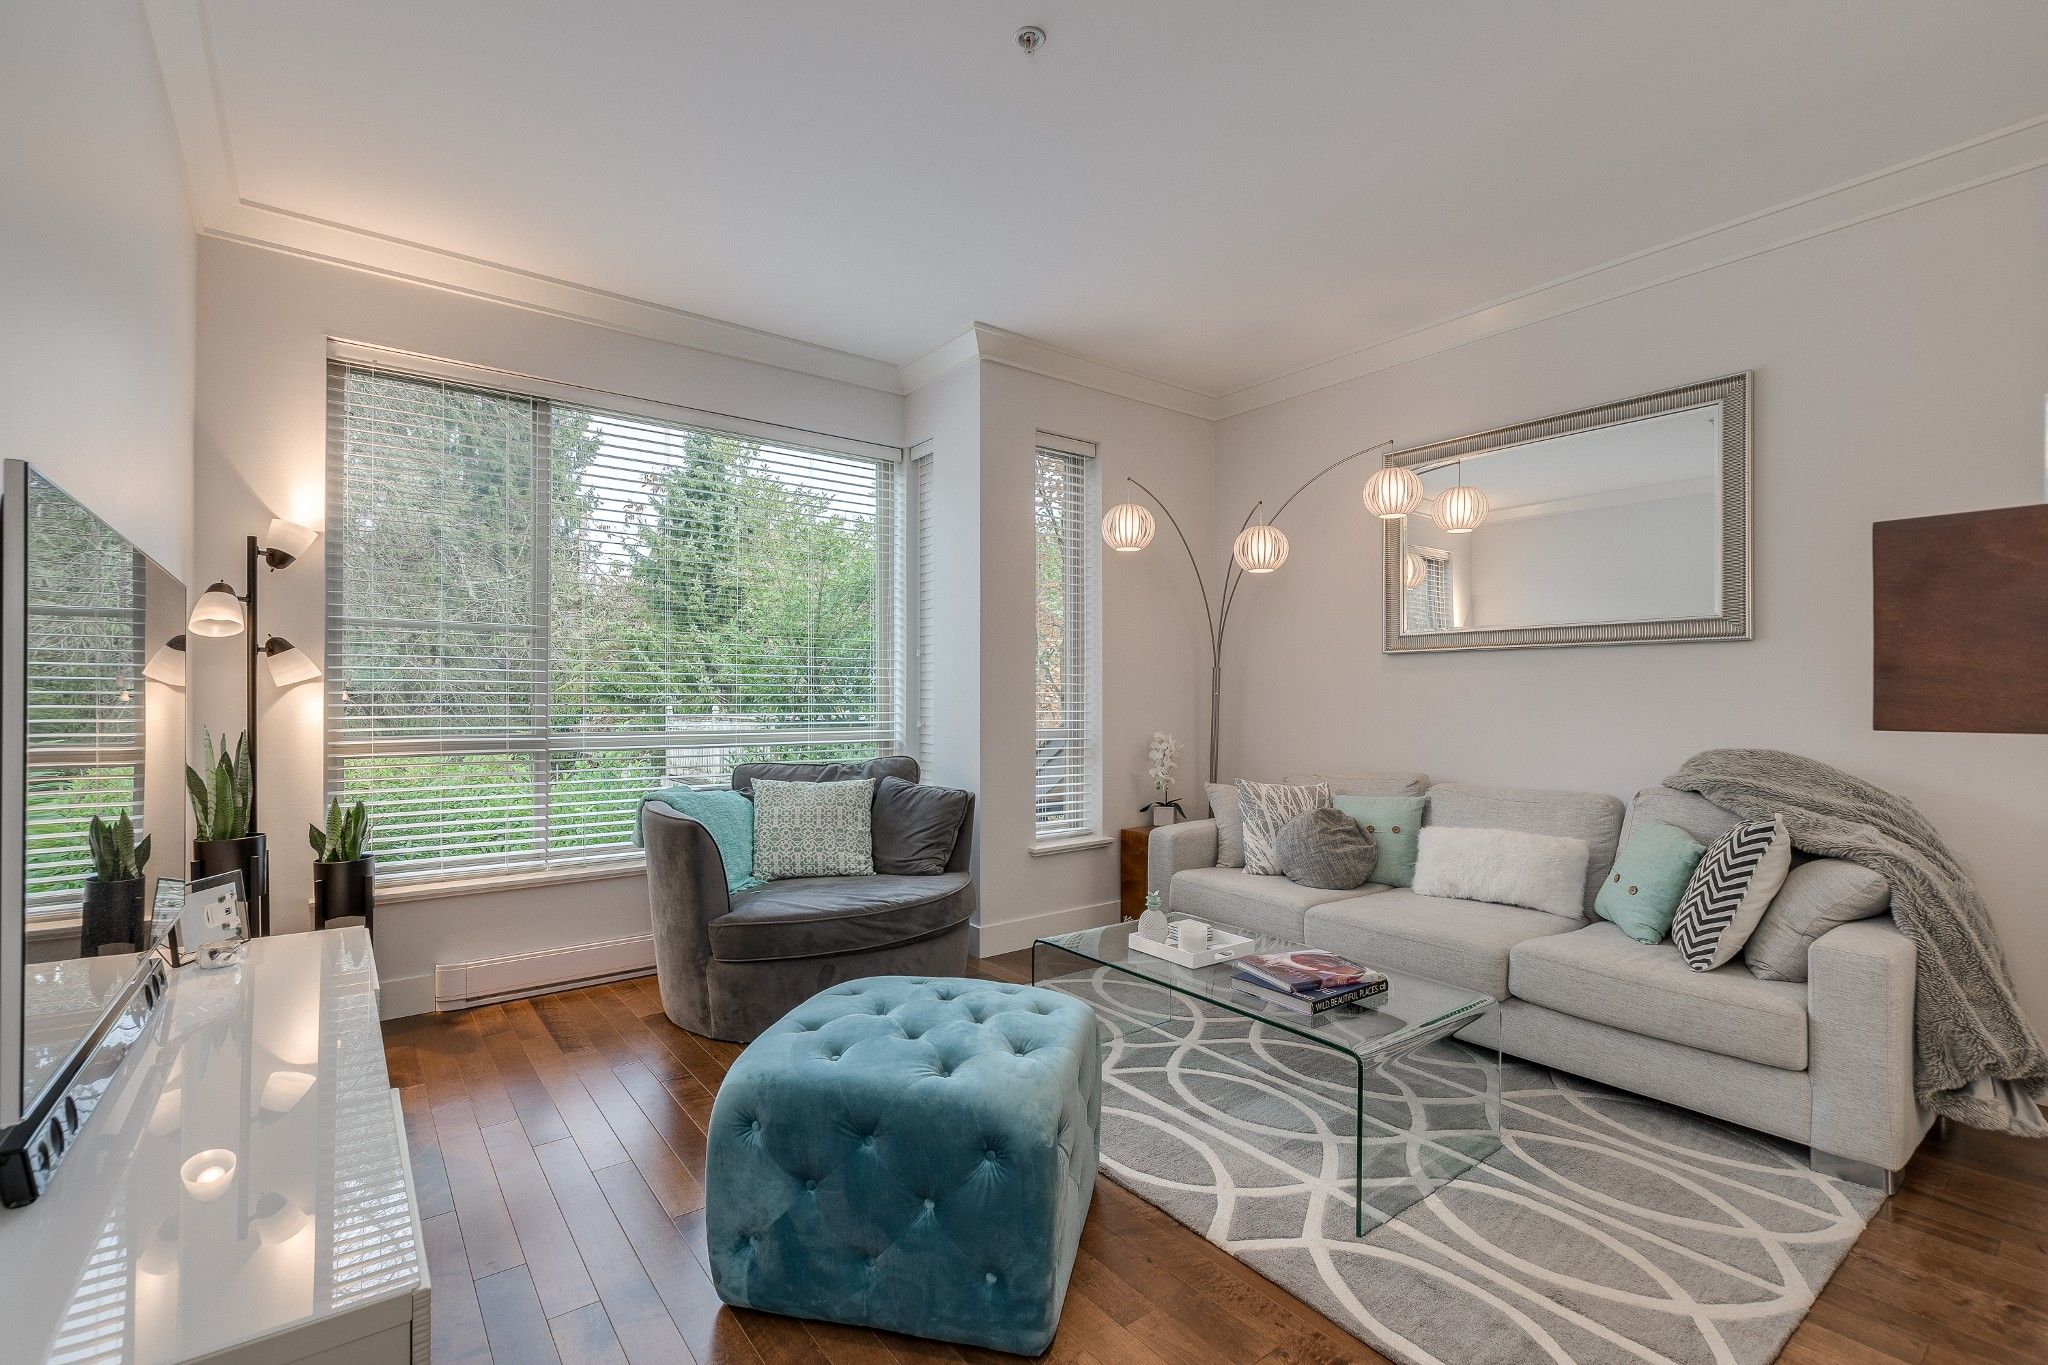 Photo 10: Photos: 24 897 Premier Street in : Lynnmour Townhouse for sale (North Vancouver)